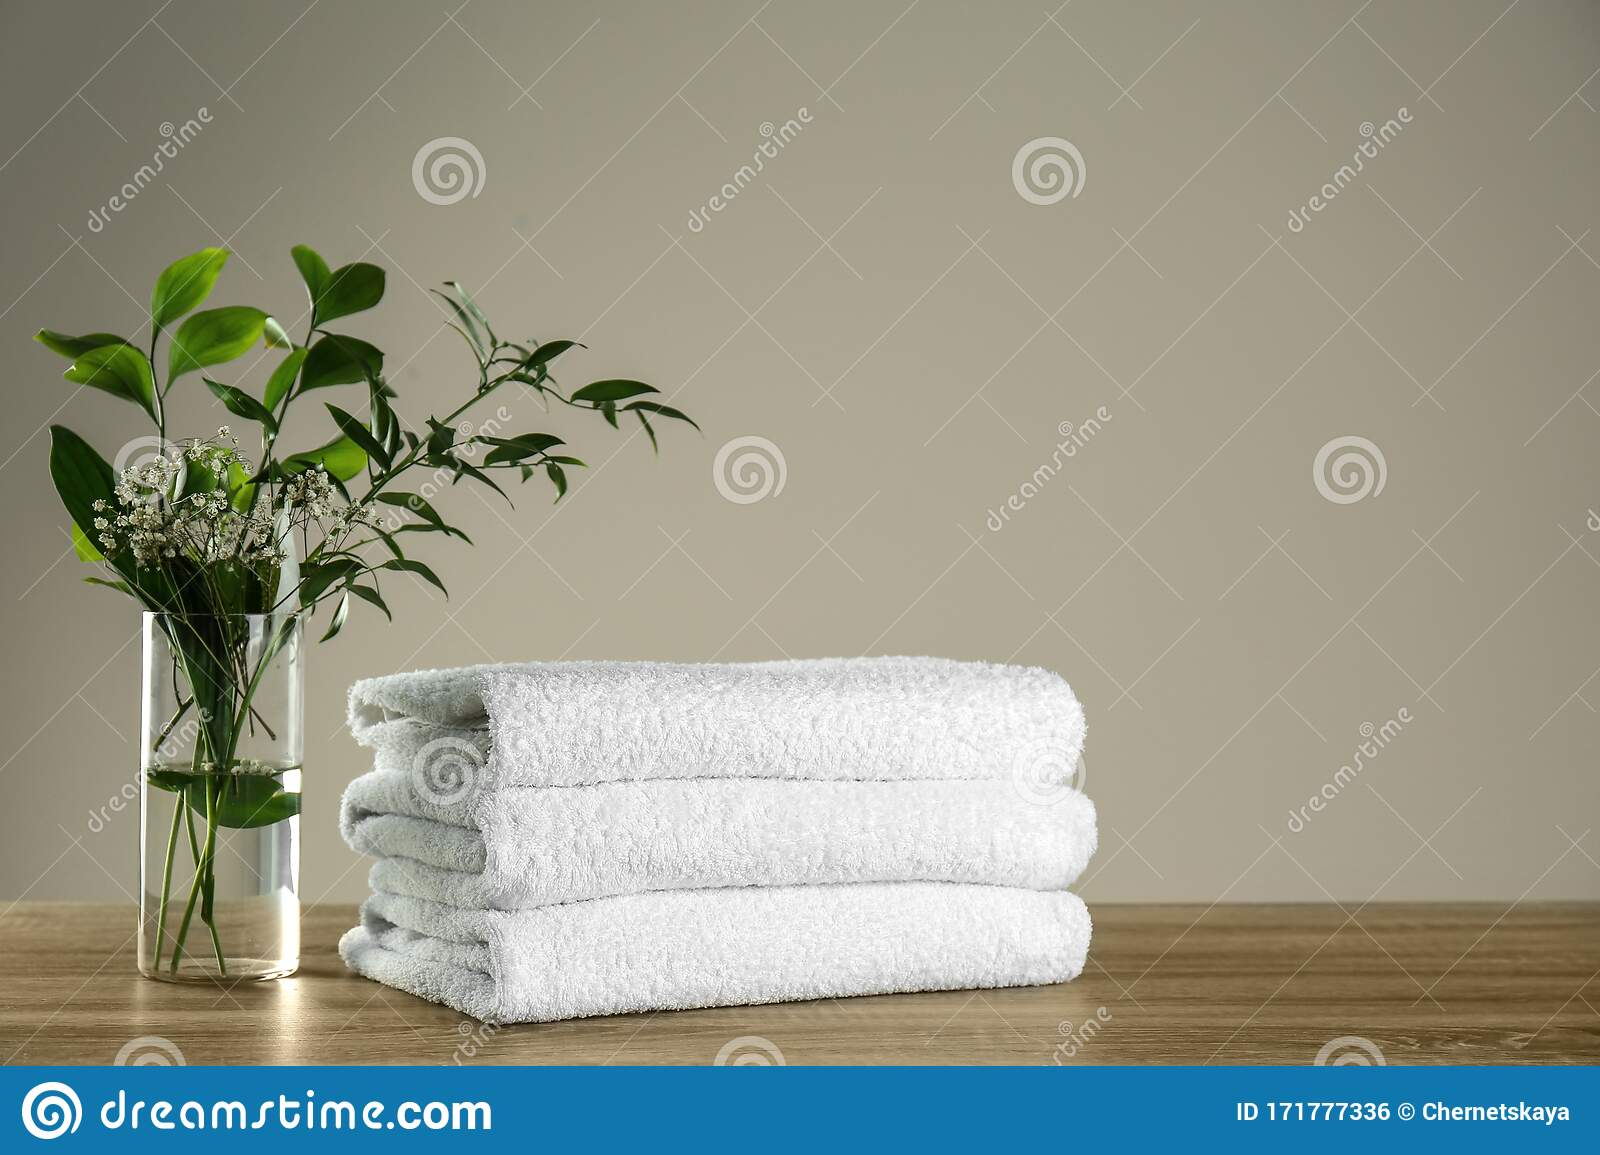 Clean Bath Towels And Vase With Green Plants On Table Space For Text Stock Photo Image Of Hygiene Plants 171777336